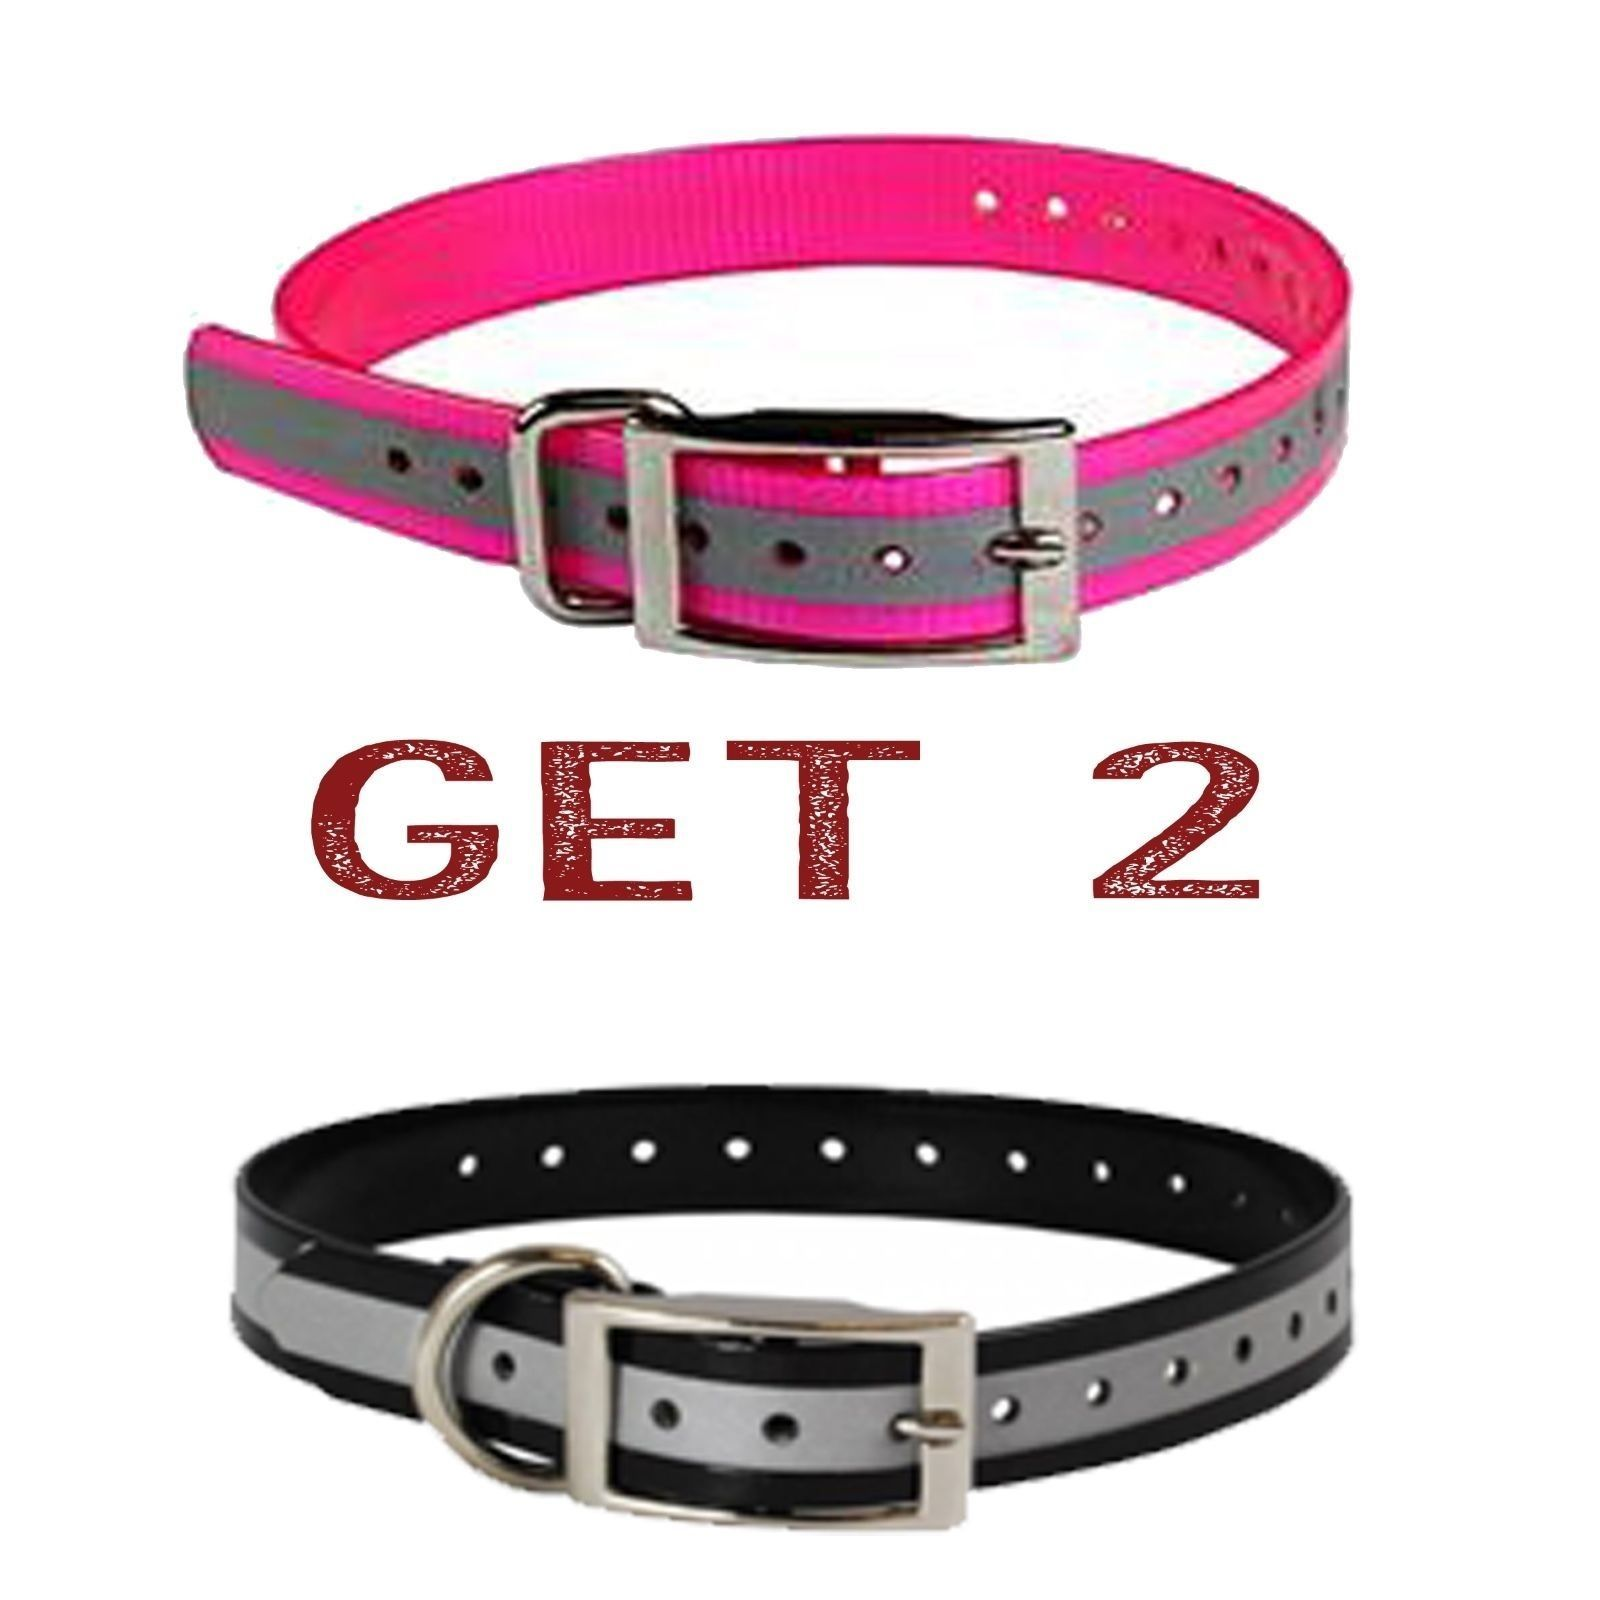 "Sparky PetCo 1"" 1- Black/1- Pink Reflective Square Buckle High Flex Dog Strap"